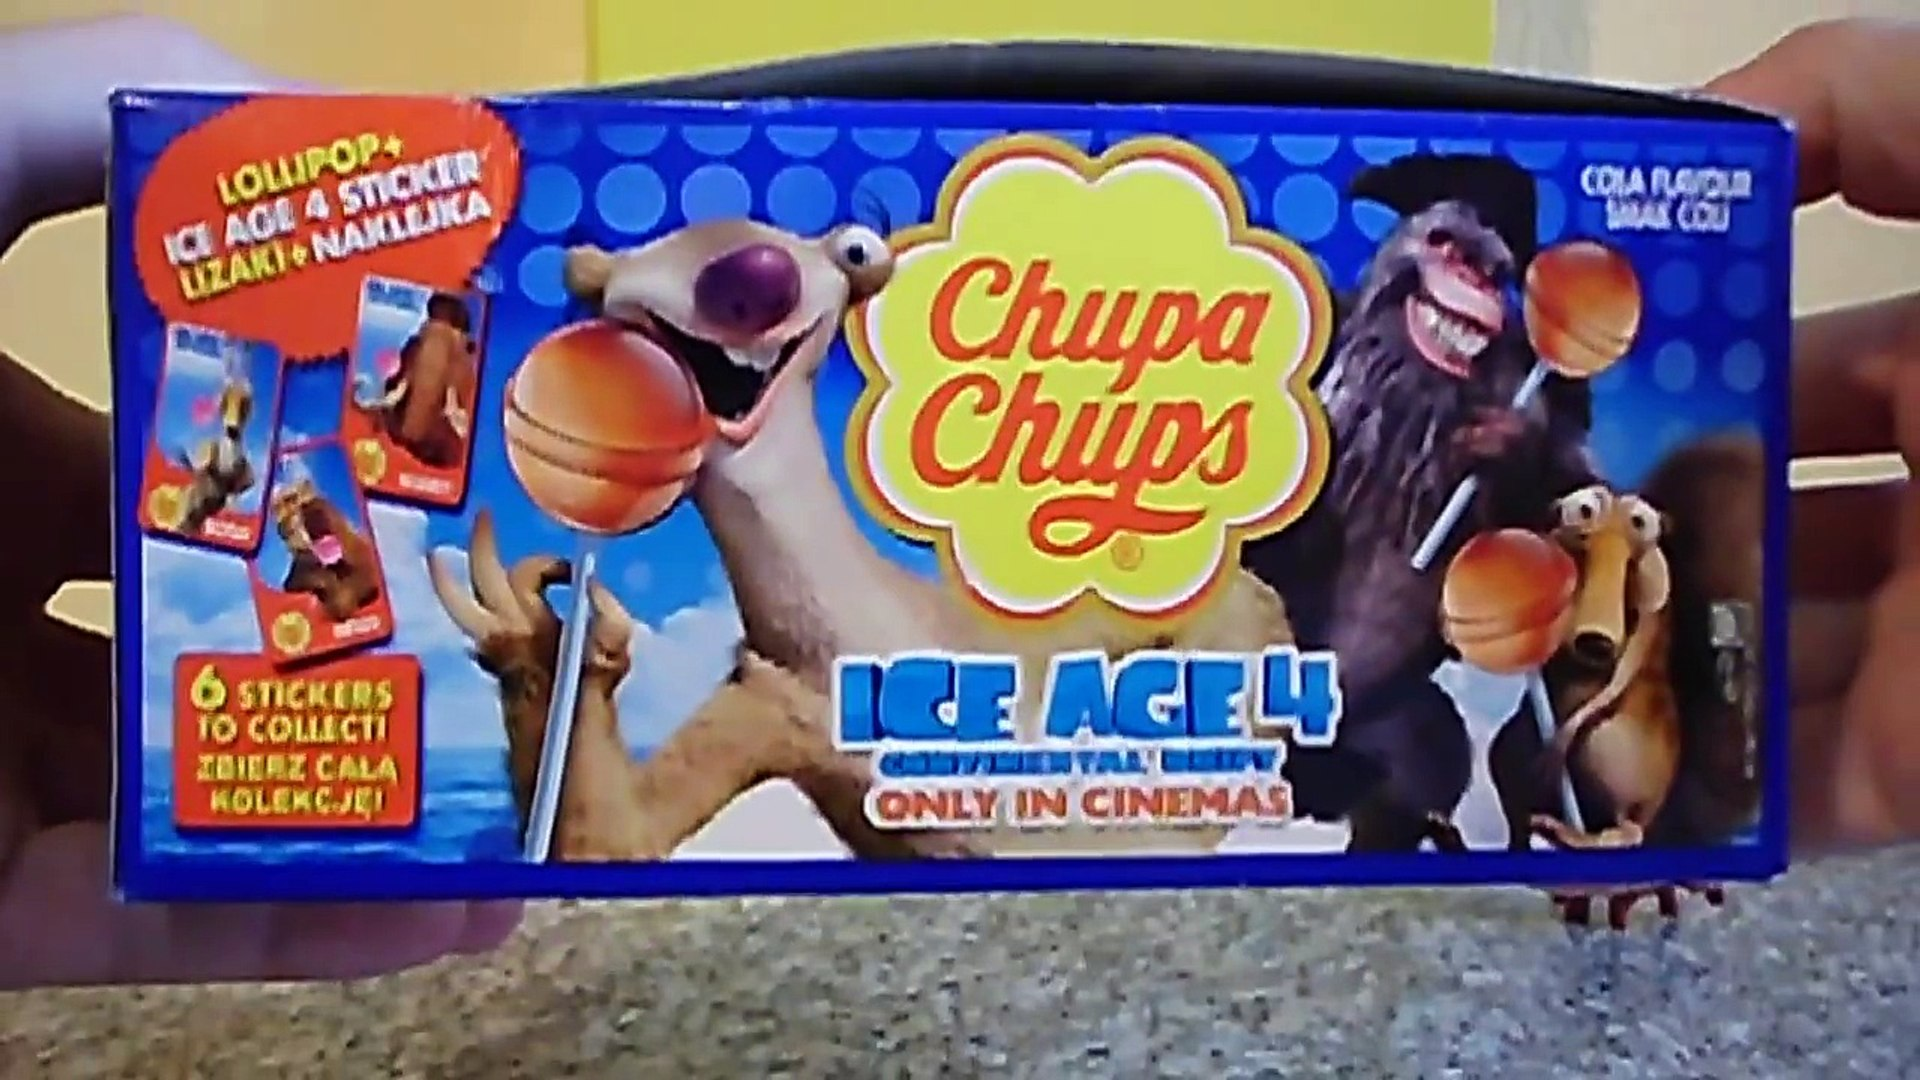 Ice Age 4 Continental Drift Movie Chupa Chups Lollipop With Stickers To Collect In Europe Video Dailymotion